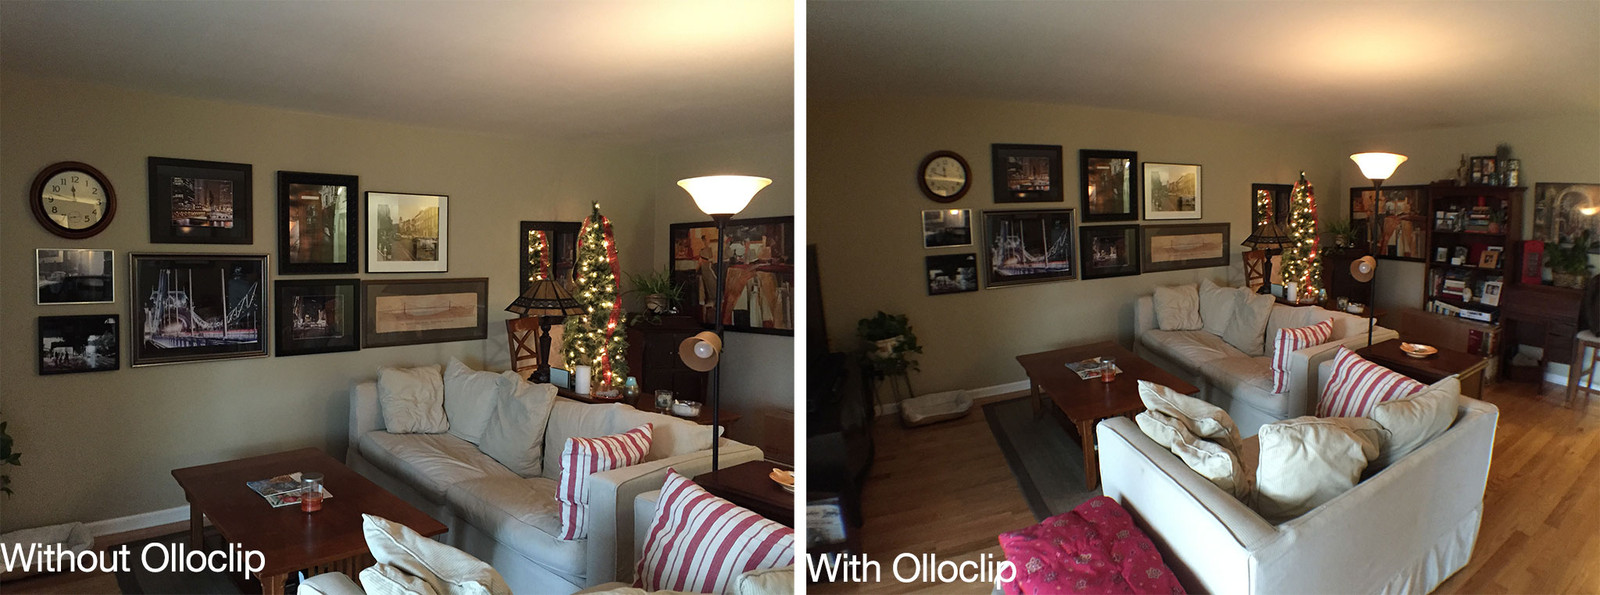 Olloclip for iPhone 6 and iPhone 6 Plus review